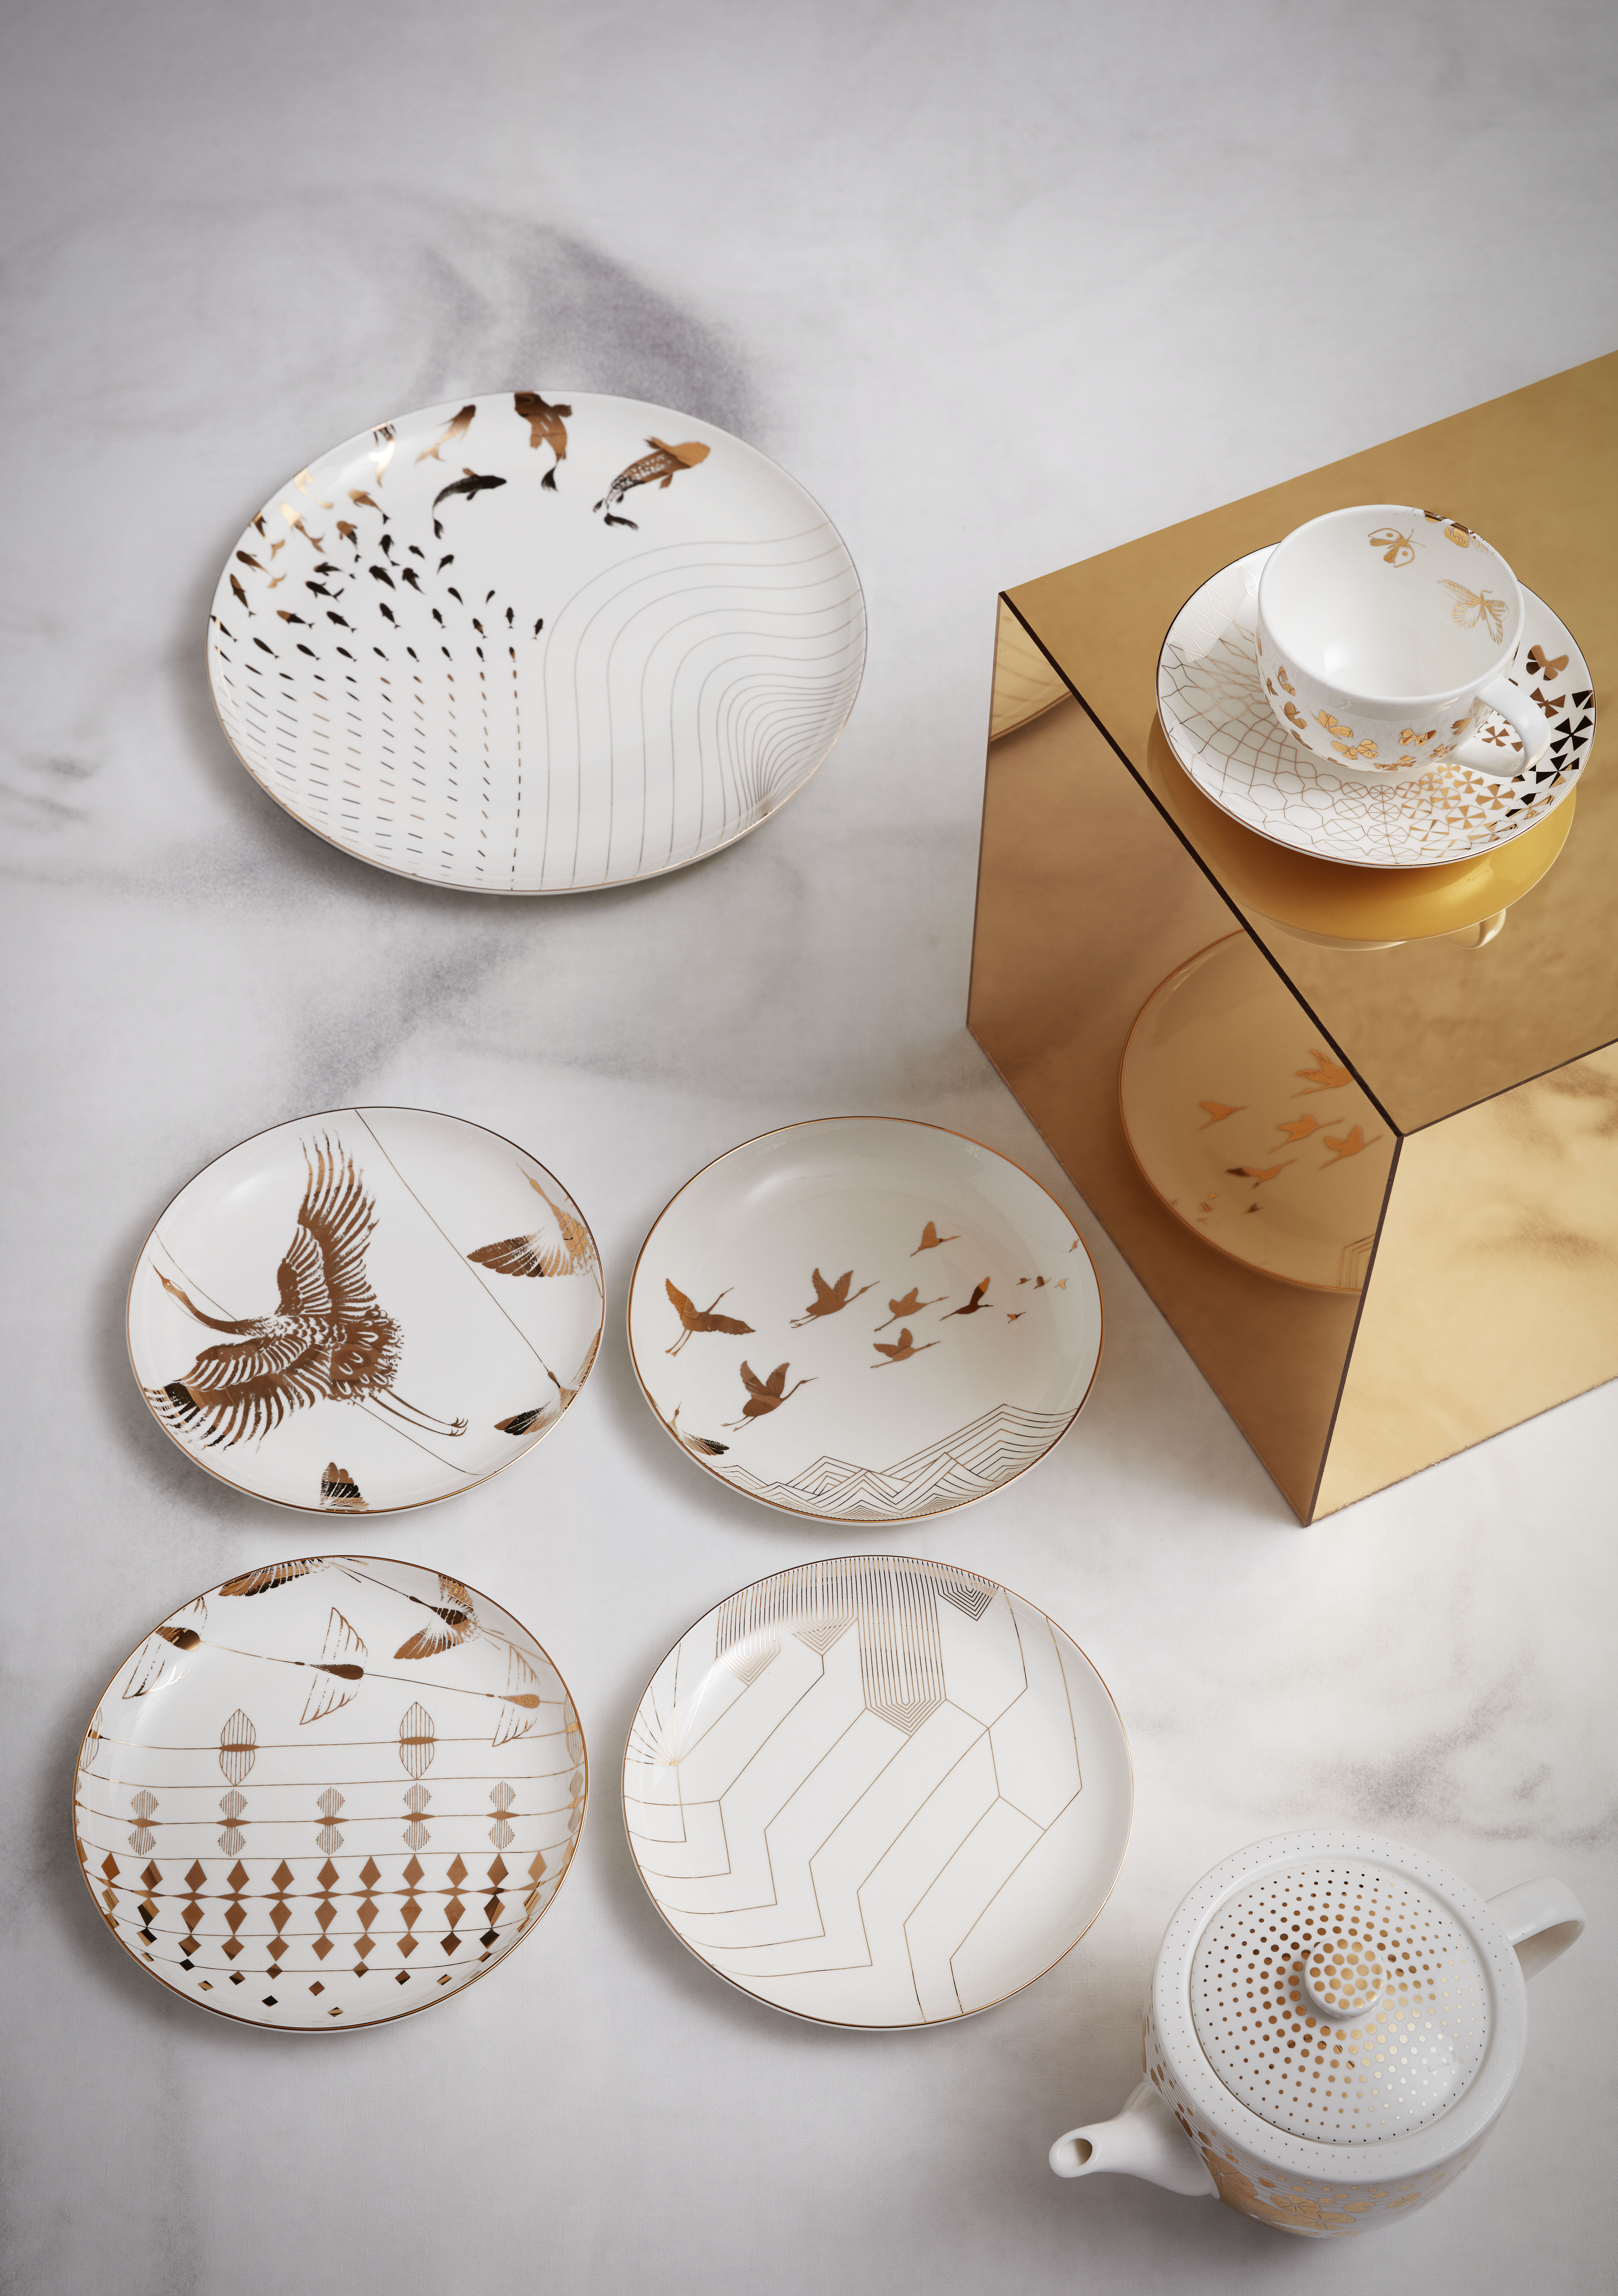 John Lewis has unveiled an exclusive series of decorative pieces for the home inspired by the collections and interiors within the Victoria and Albert ... & John Lewis launches homeware range inspired by Vu0026A Museum u2013 Housewares